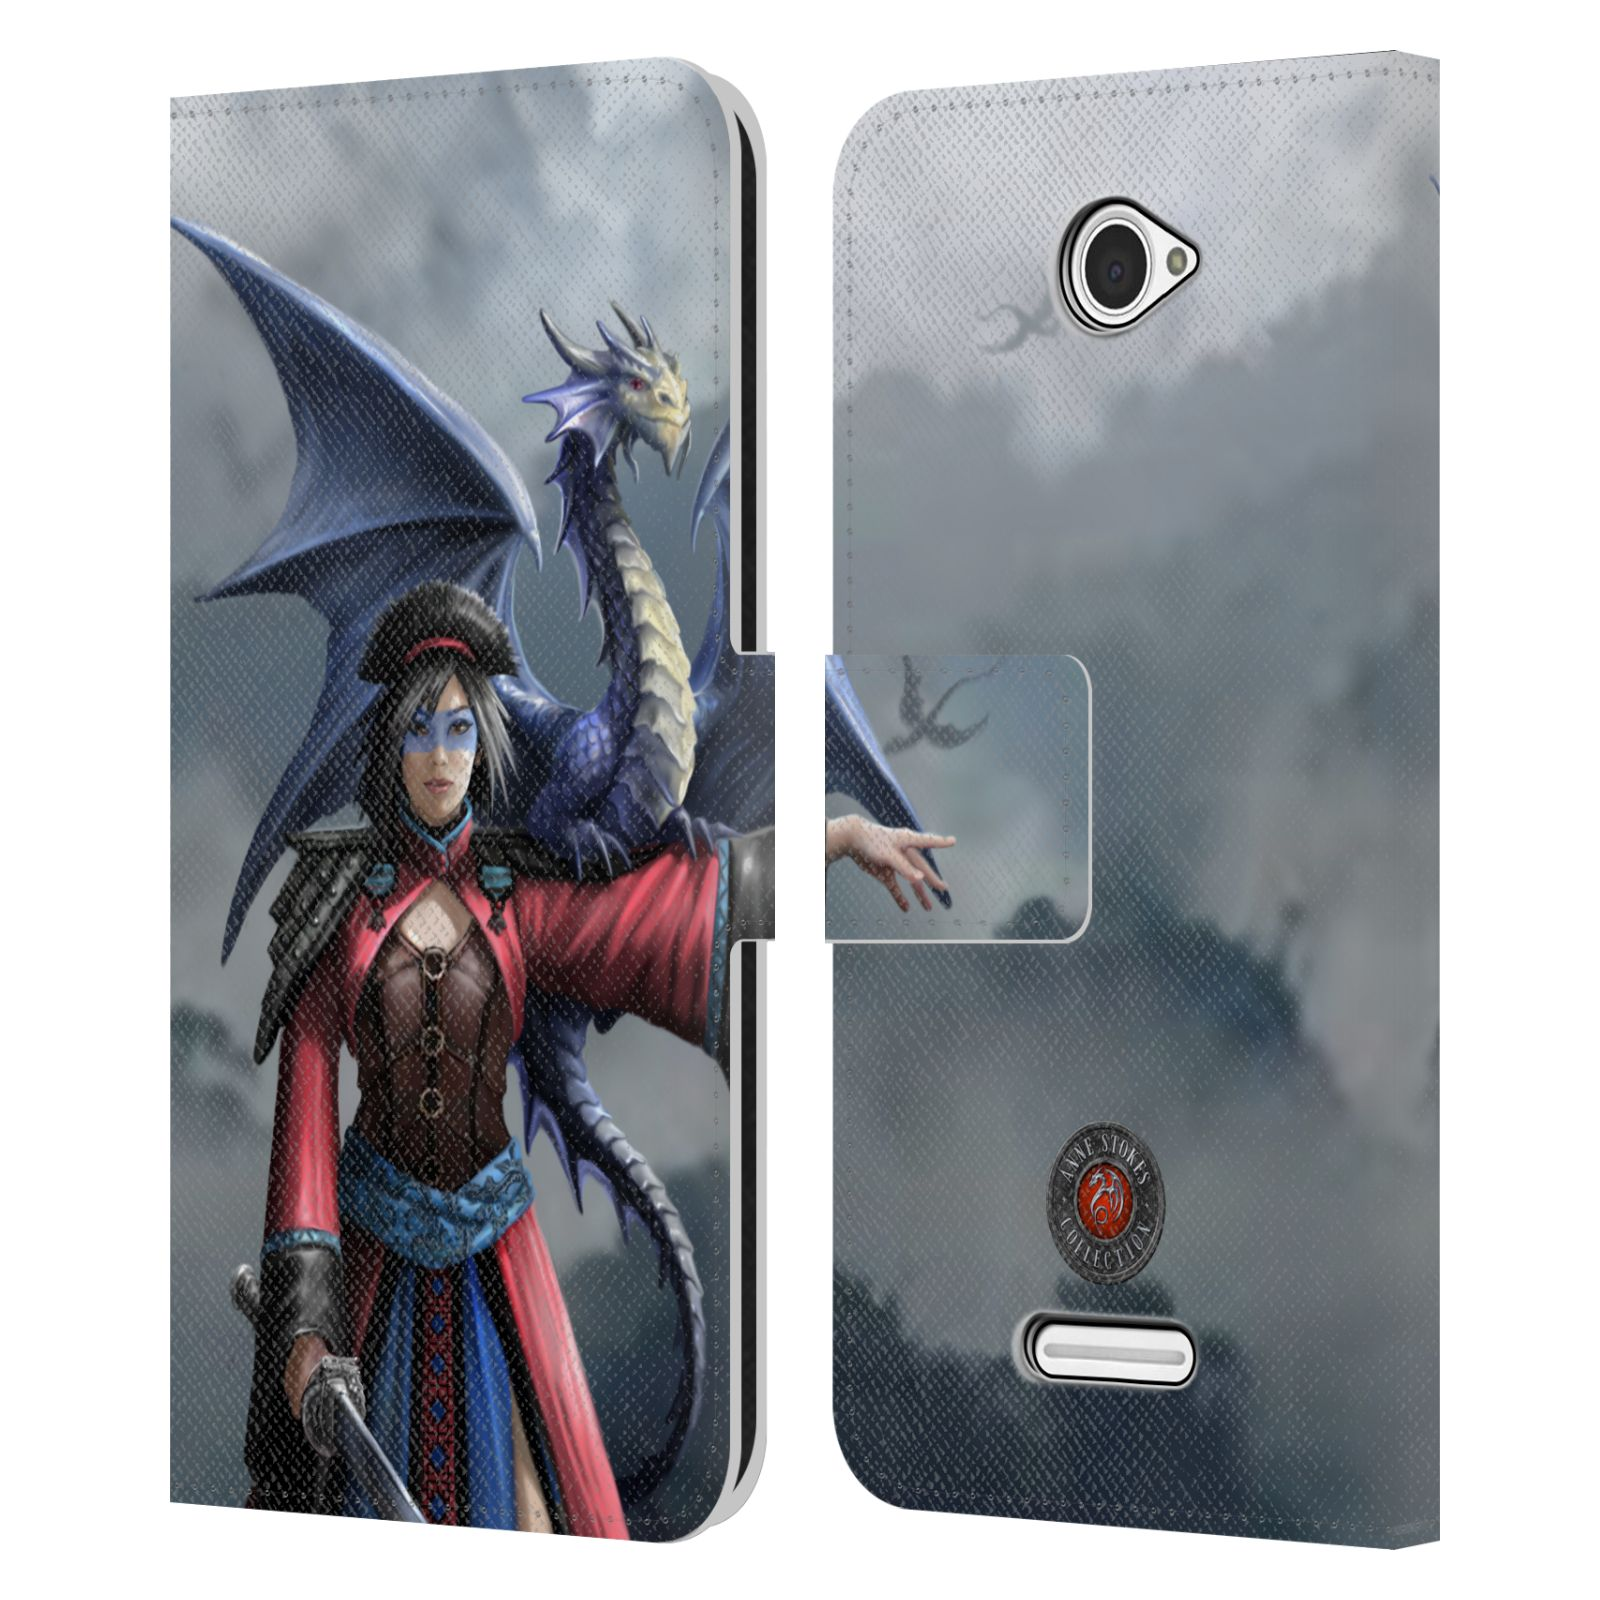 OFFICIAL-ANNE-STOKES-DRAGON-FRIENDSHIP-2-LEATHER-BOOK-CASE-FOR-SONY-PHONES-2